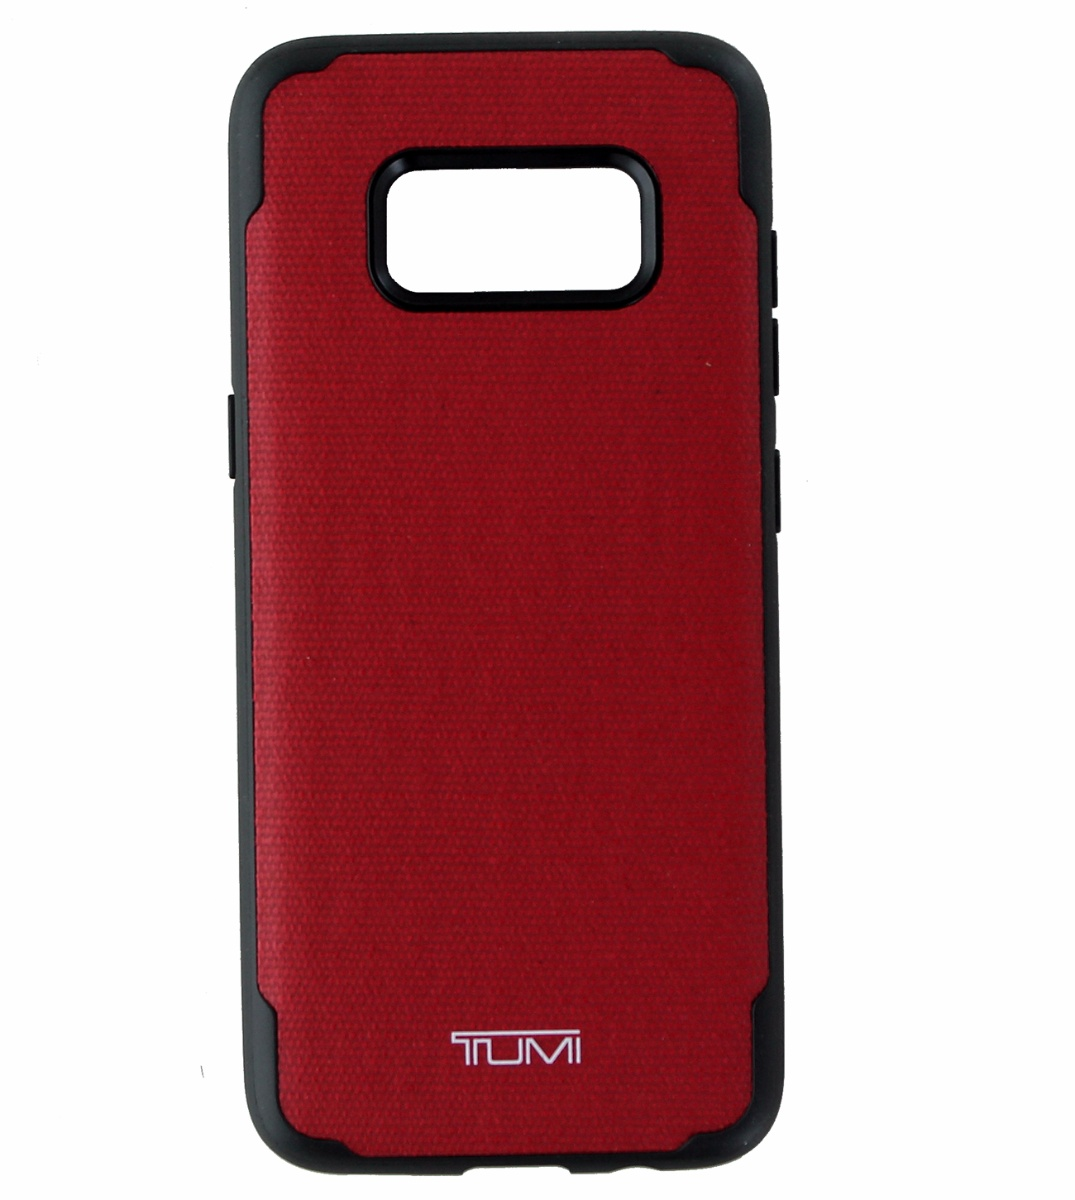 b657927f670 Simple Cell bulk  TUMI Coated Canvas Co-Mold Case Cover for Samsung ...